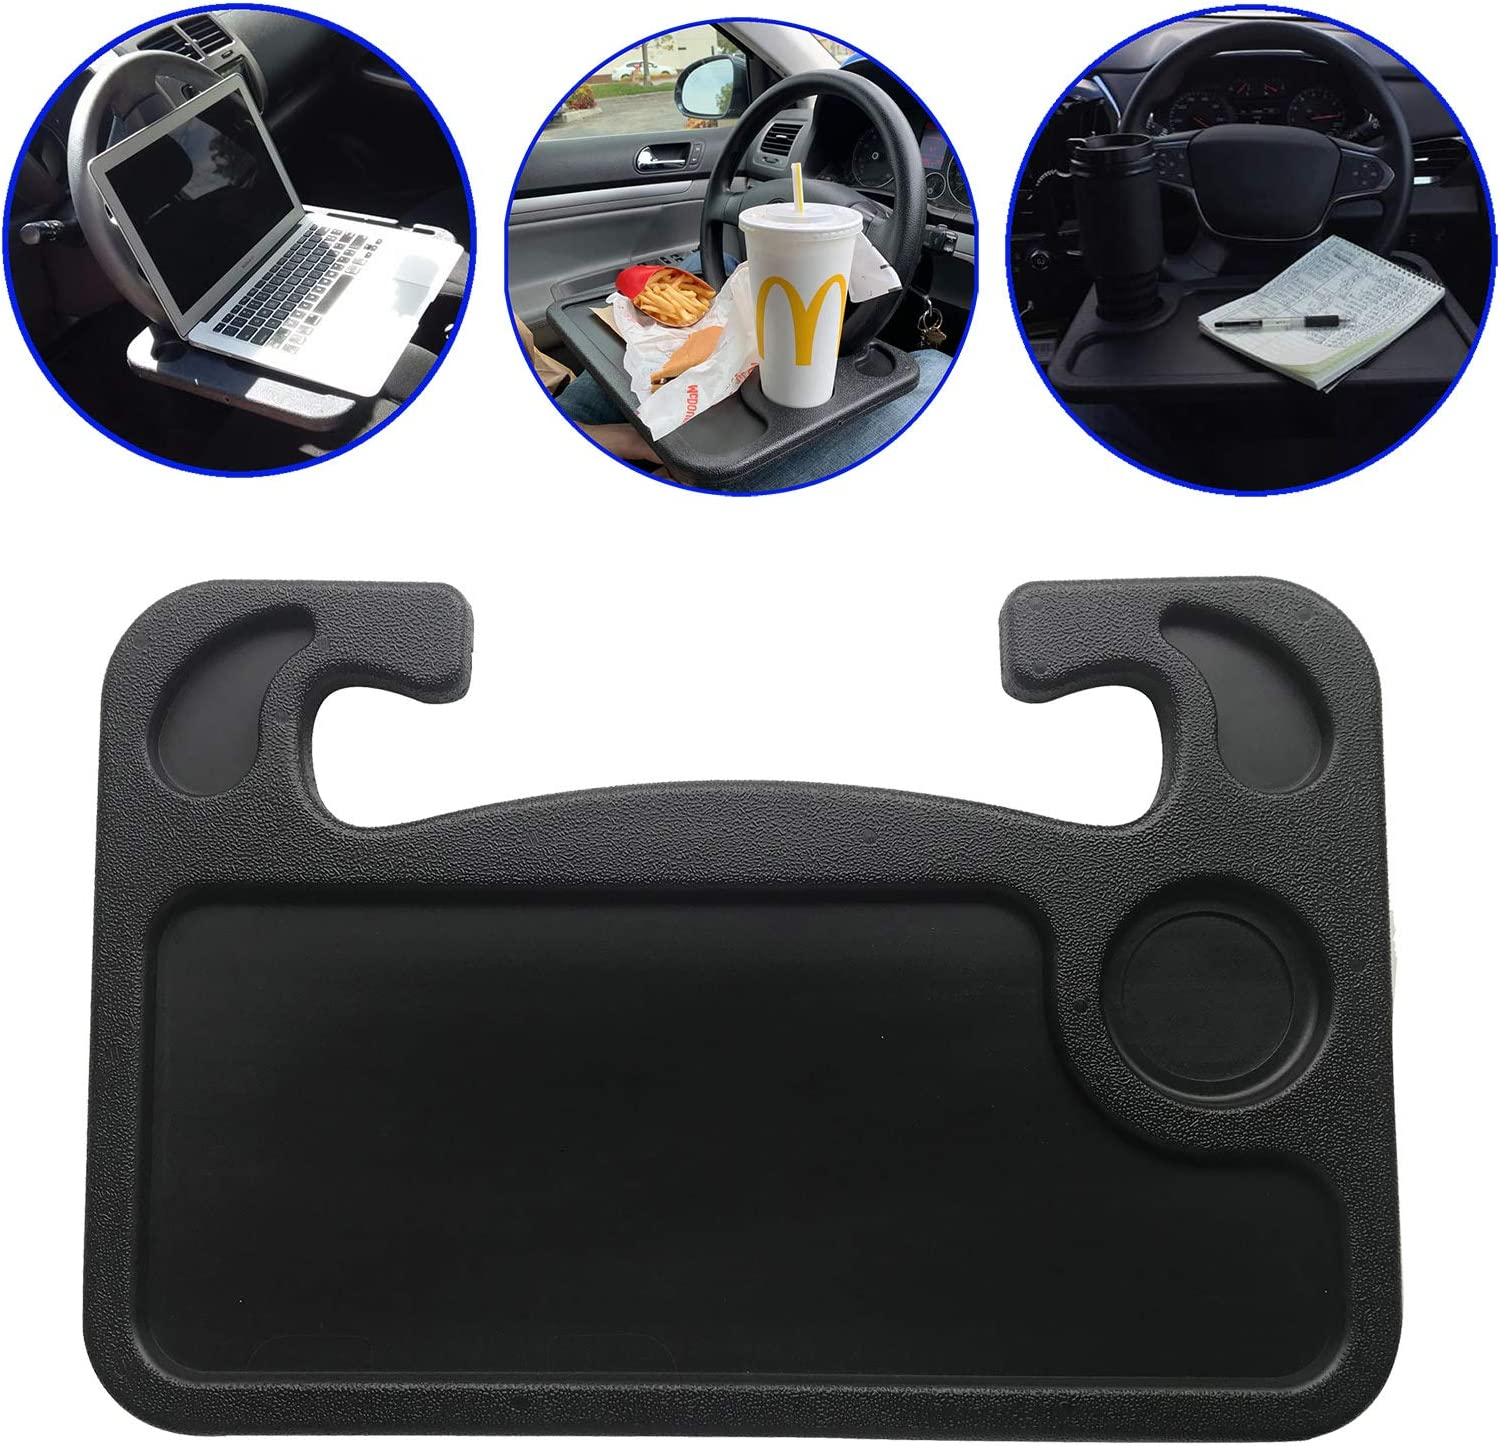 CHARMCHIC Steering Wheel Tray for Car Truck,Portable Laptop Table Desk for Eating Food,Reading,Makeup, Notebook and Phone Mount (Black)